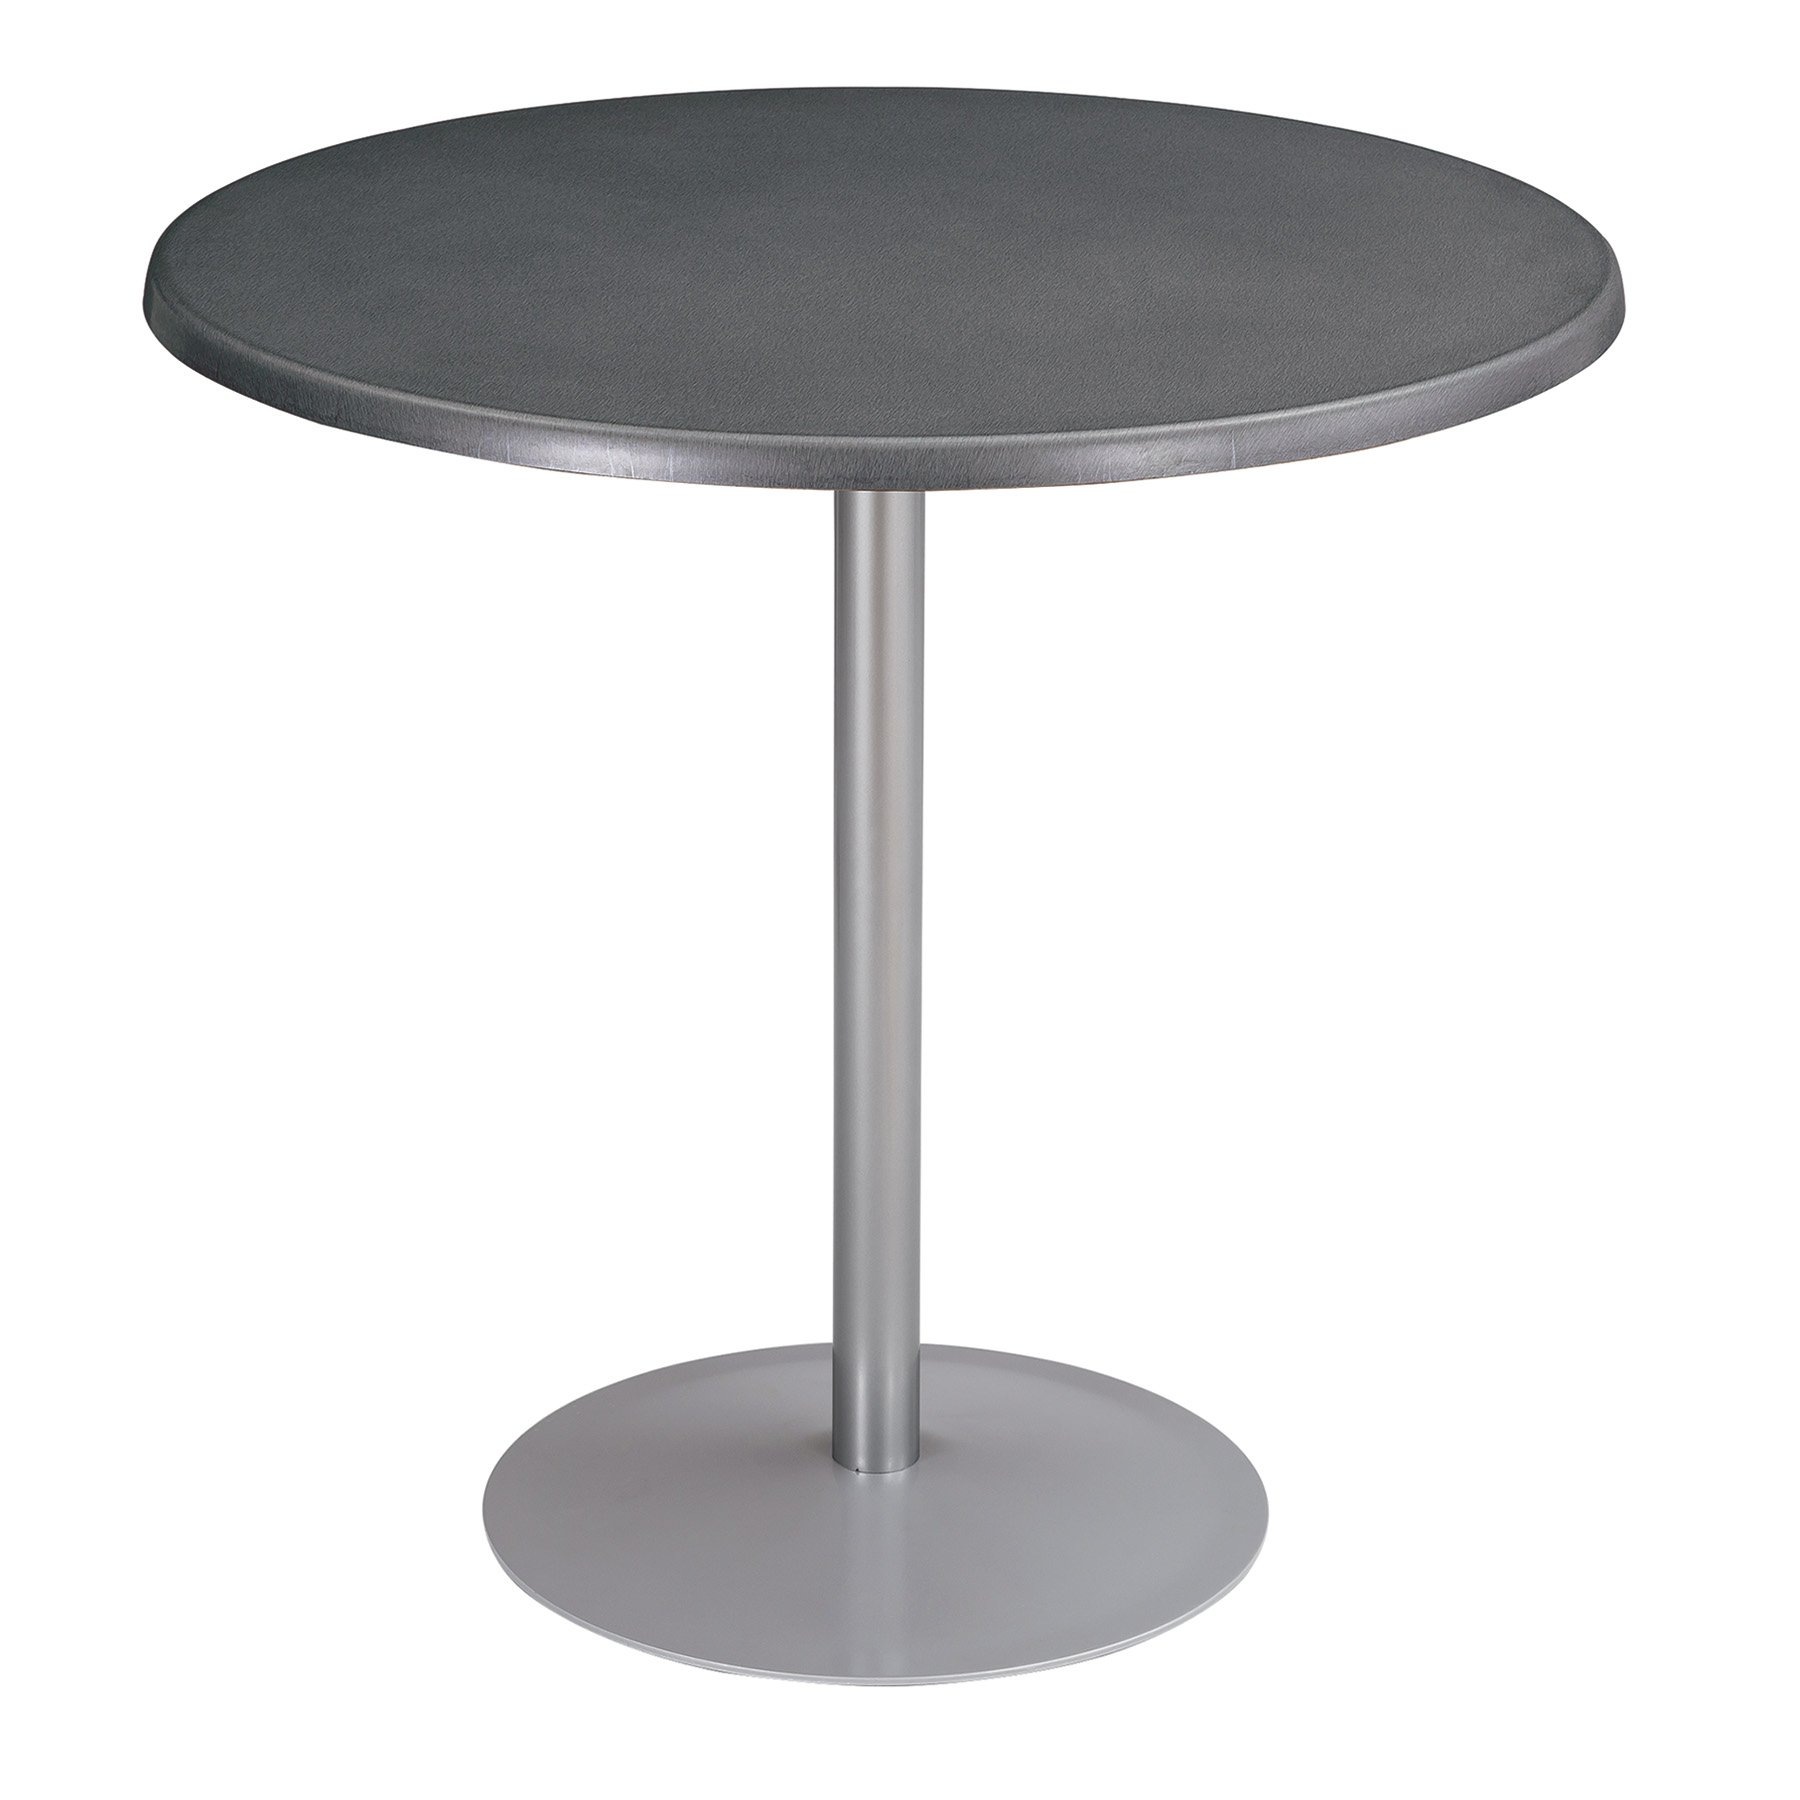 Safco Products 2492AC Entourage Table Top, 32'' Round (Base sold separately), Anthracite